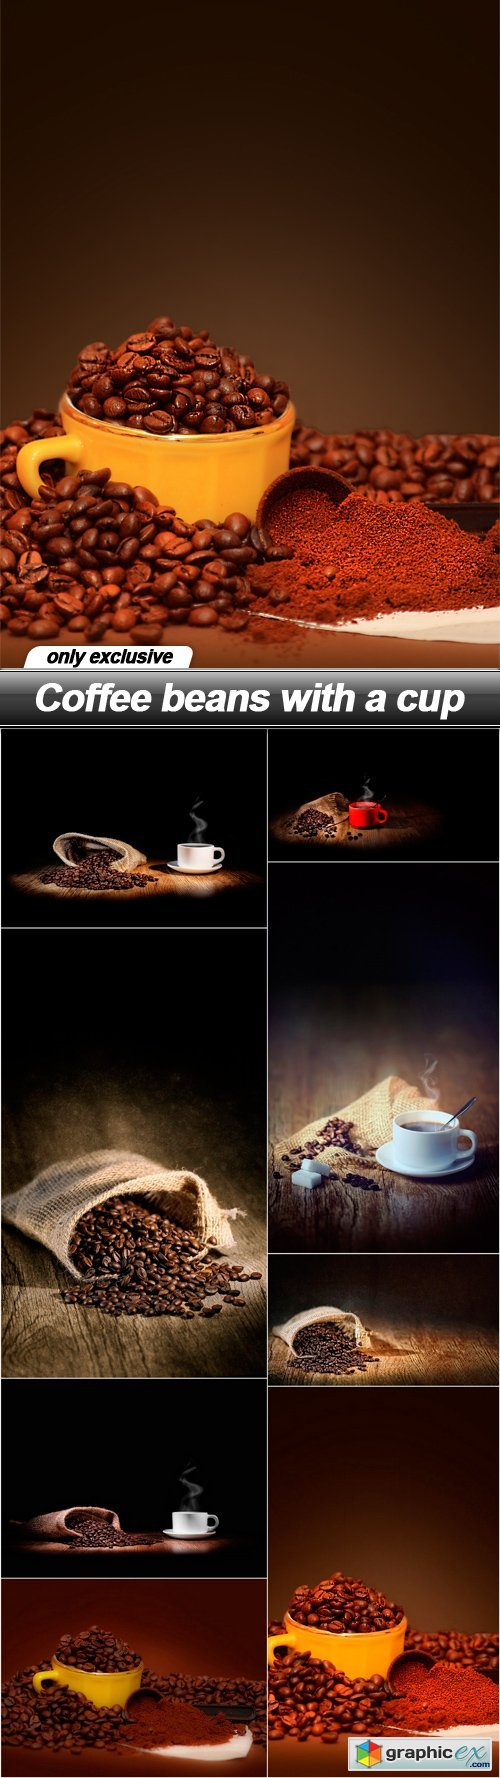 Coffee beans with a cup - 8 UHQ JPEG